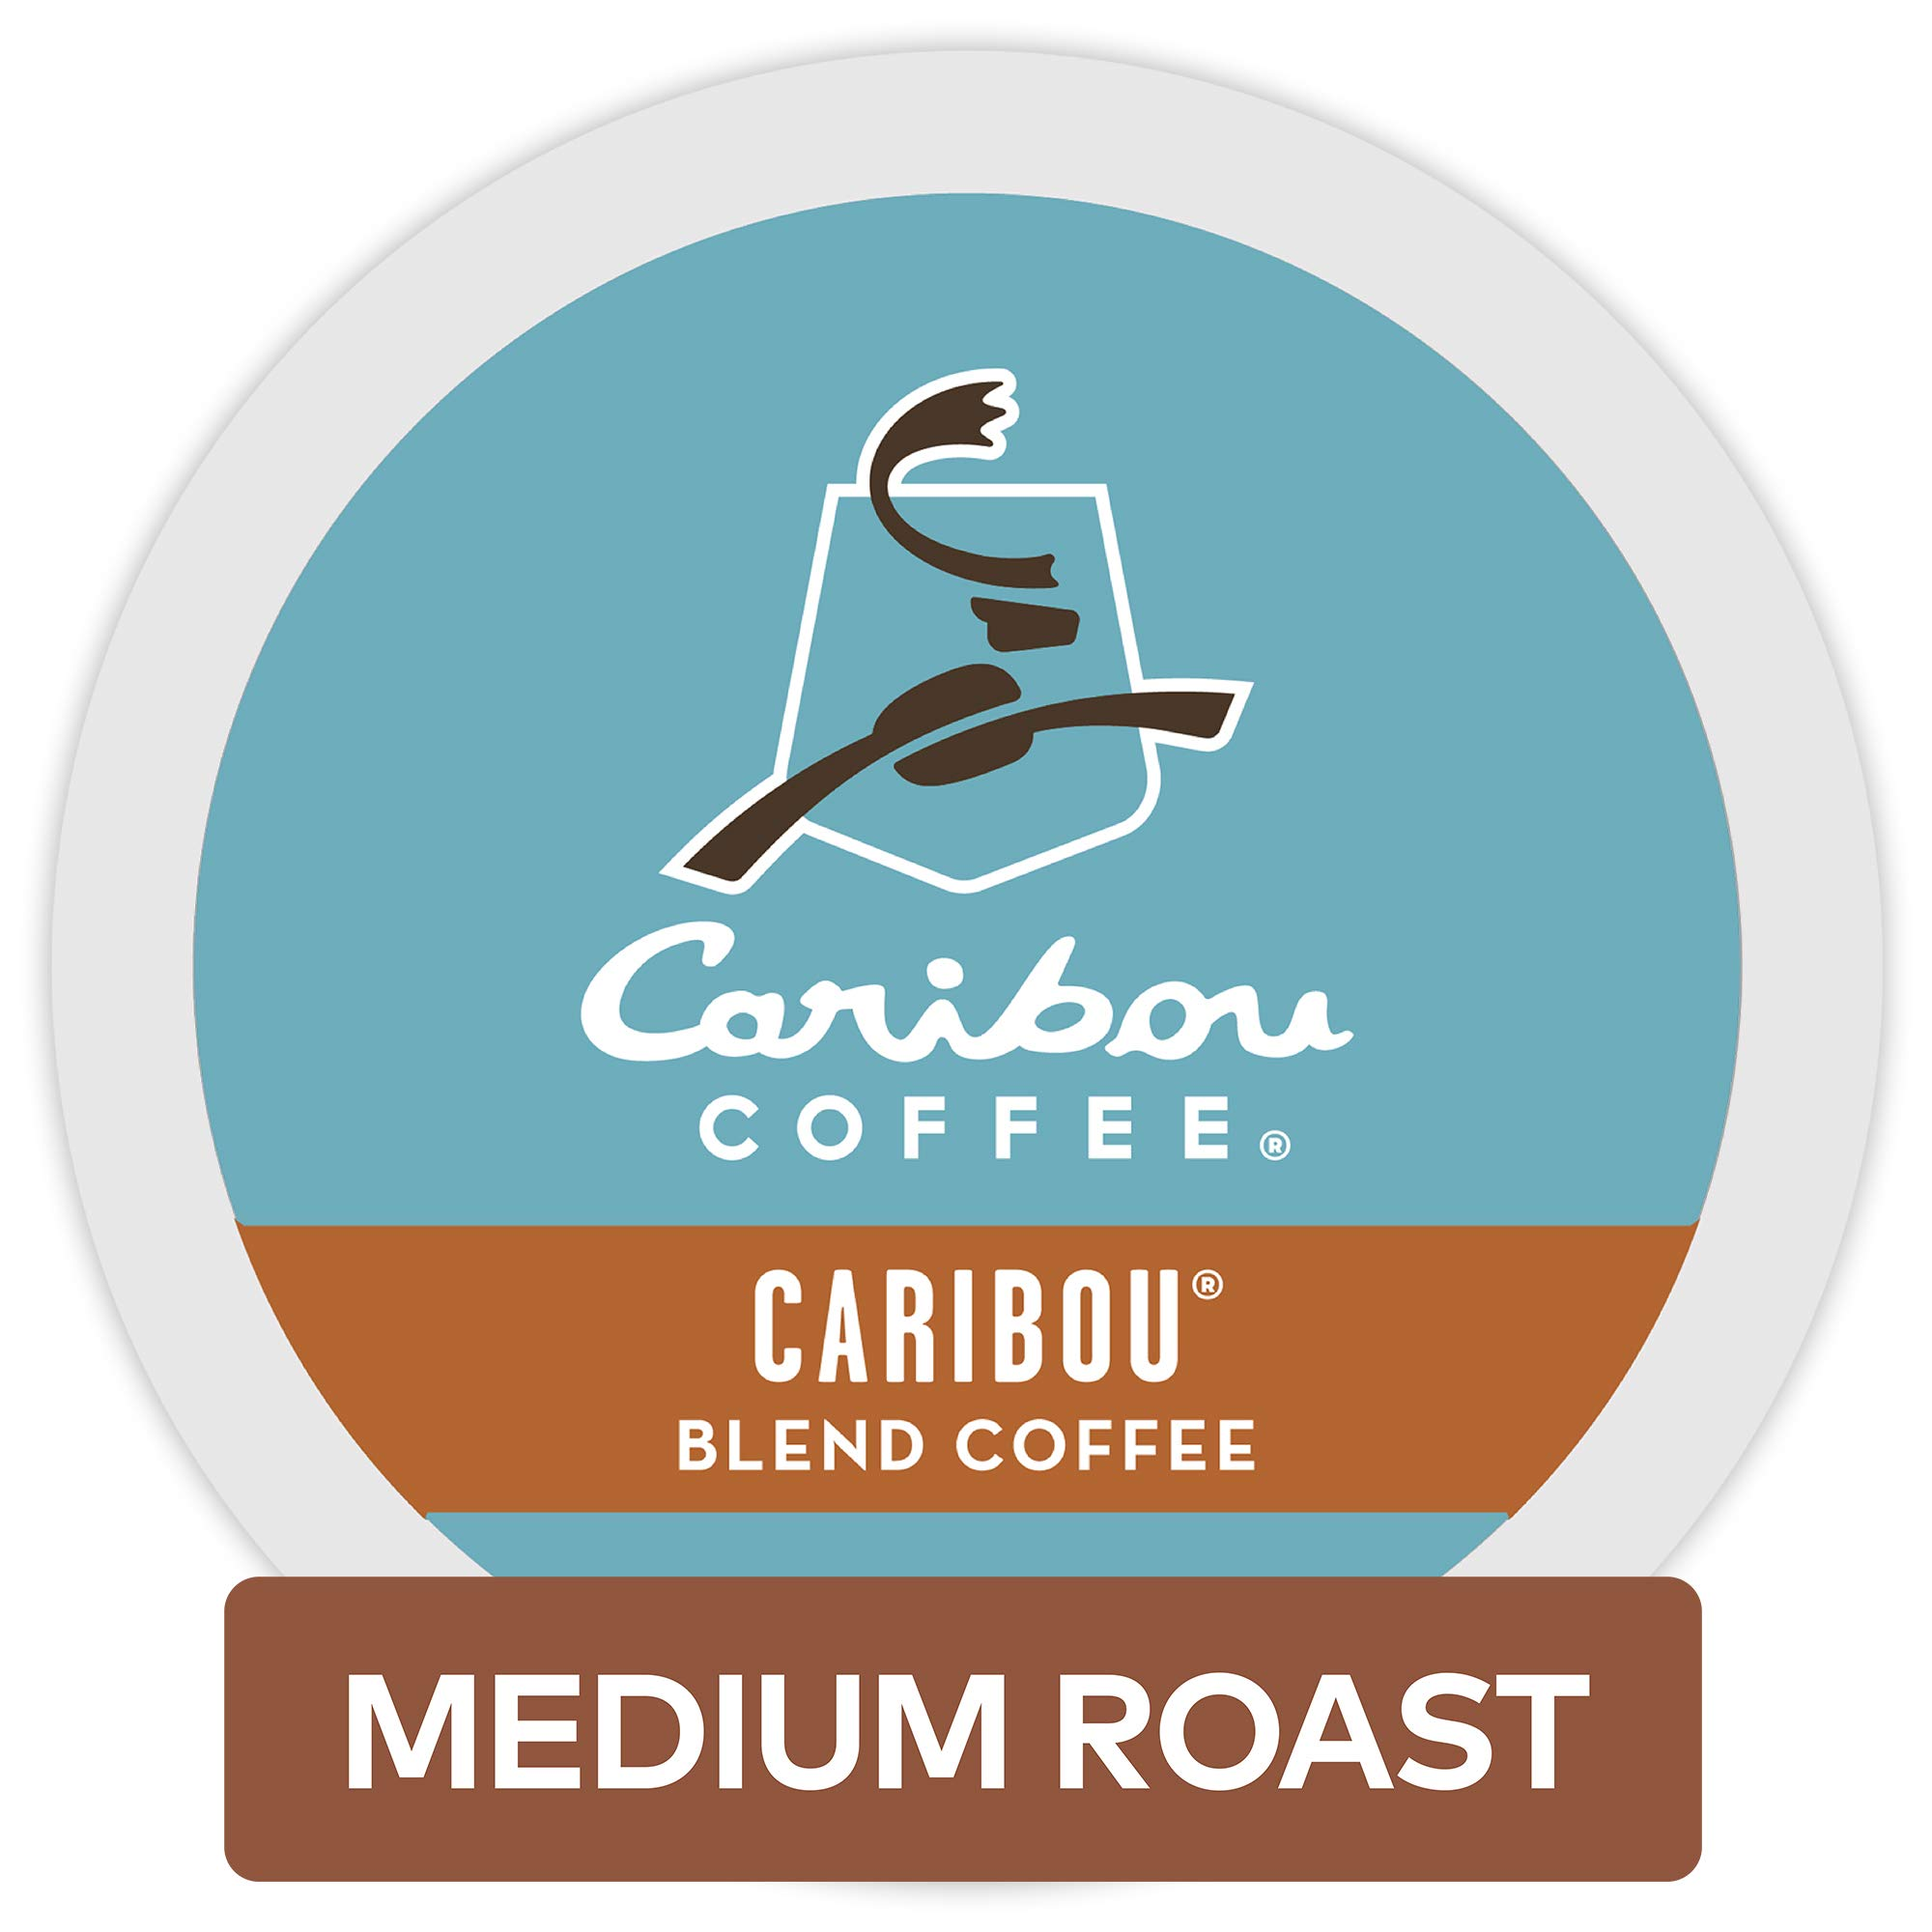 Caribou Coffee Caribou Blend, Single Serve Coffee K-Cup Pod, Medium Roast, 12 count, Pack of 6 by Caribou Coffee (Image #1)